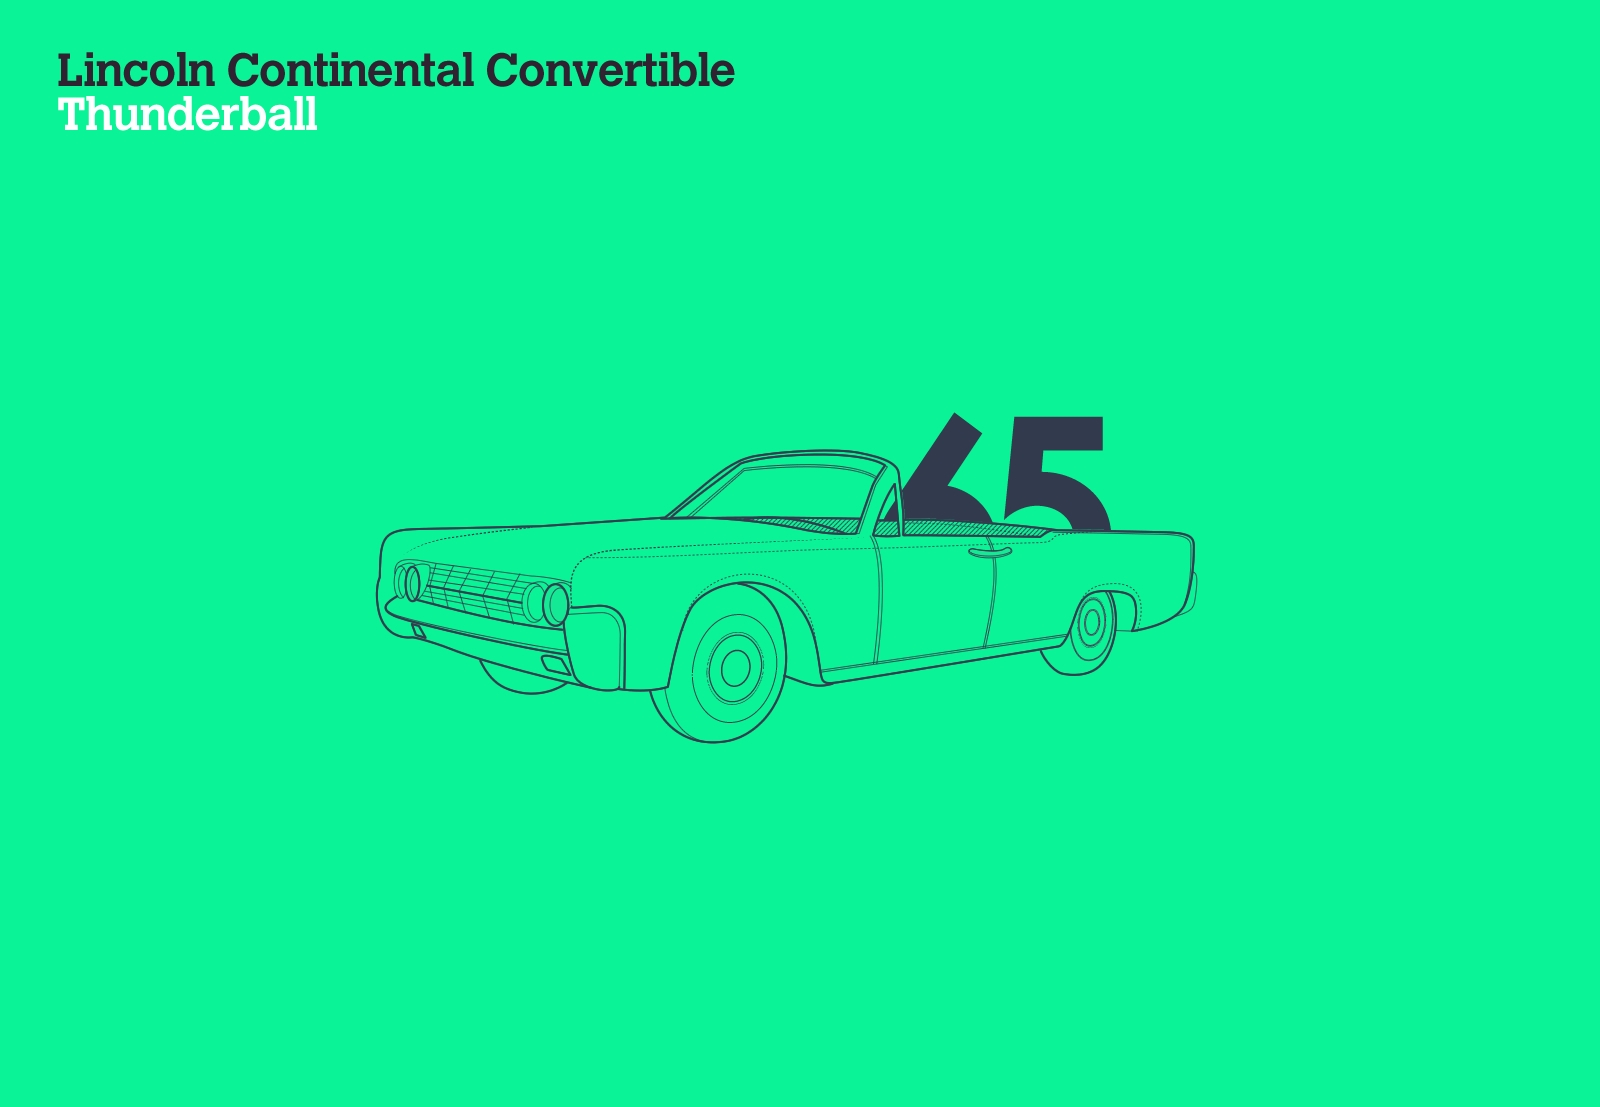 Lincoln Continental Convertible Thunderball